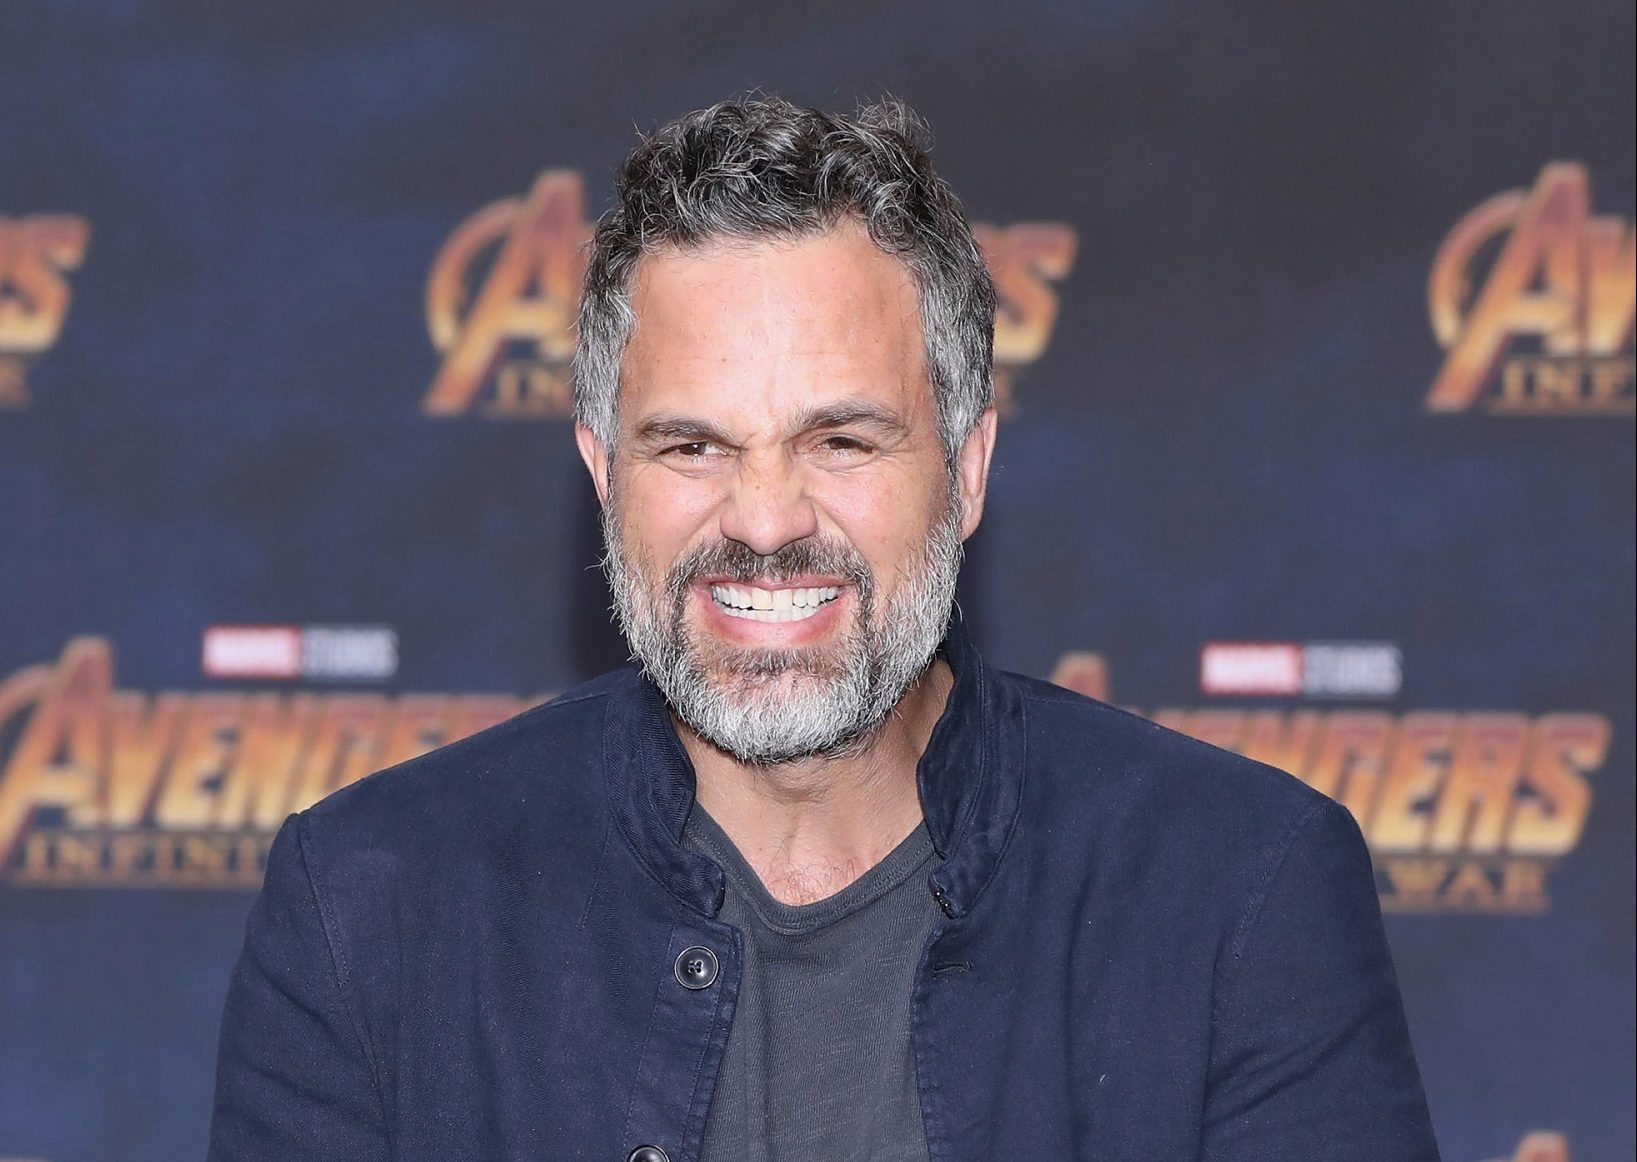 """MEXICO CITY, MEXICO - APRIL 05: Actor Mark Ruffalo attends a press conference to promote the film """"Avengers: Infinity War"""" at Four Seasons Hotel on April 5, 2018 in Mexico City, Mexico. (Photo by Victor Chavez/Getty Images)"""